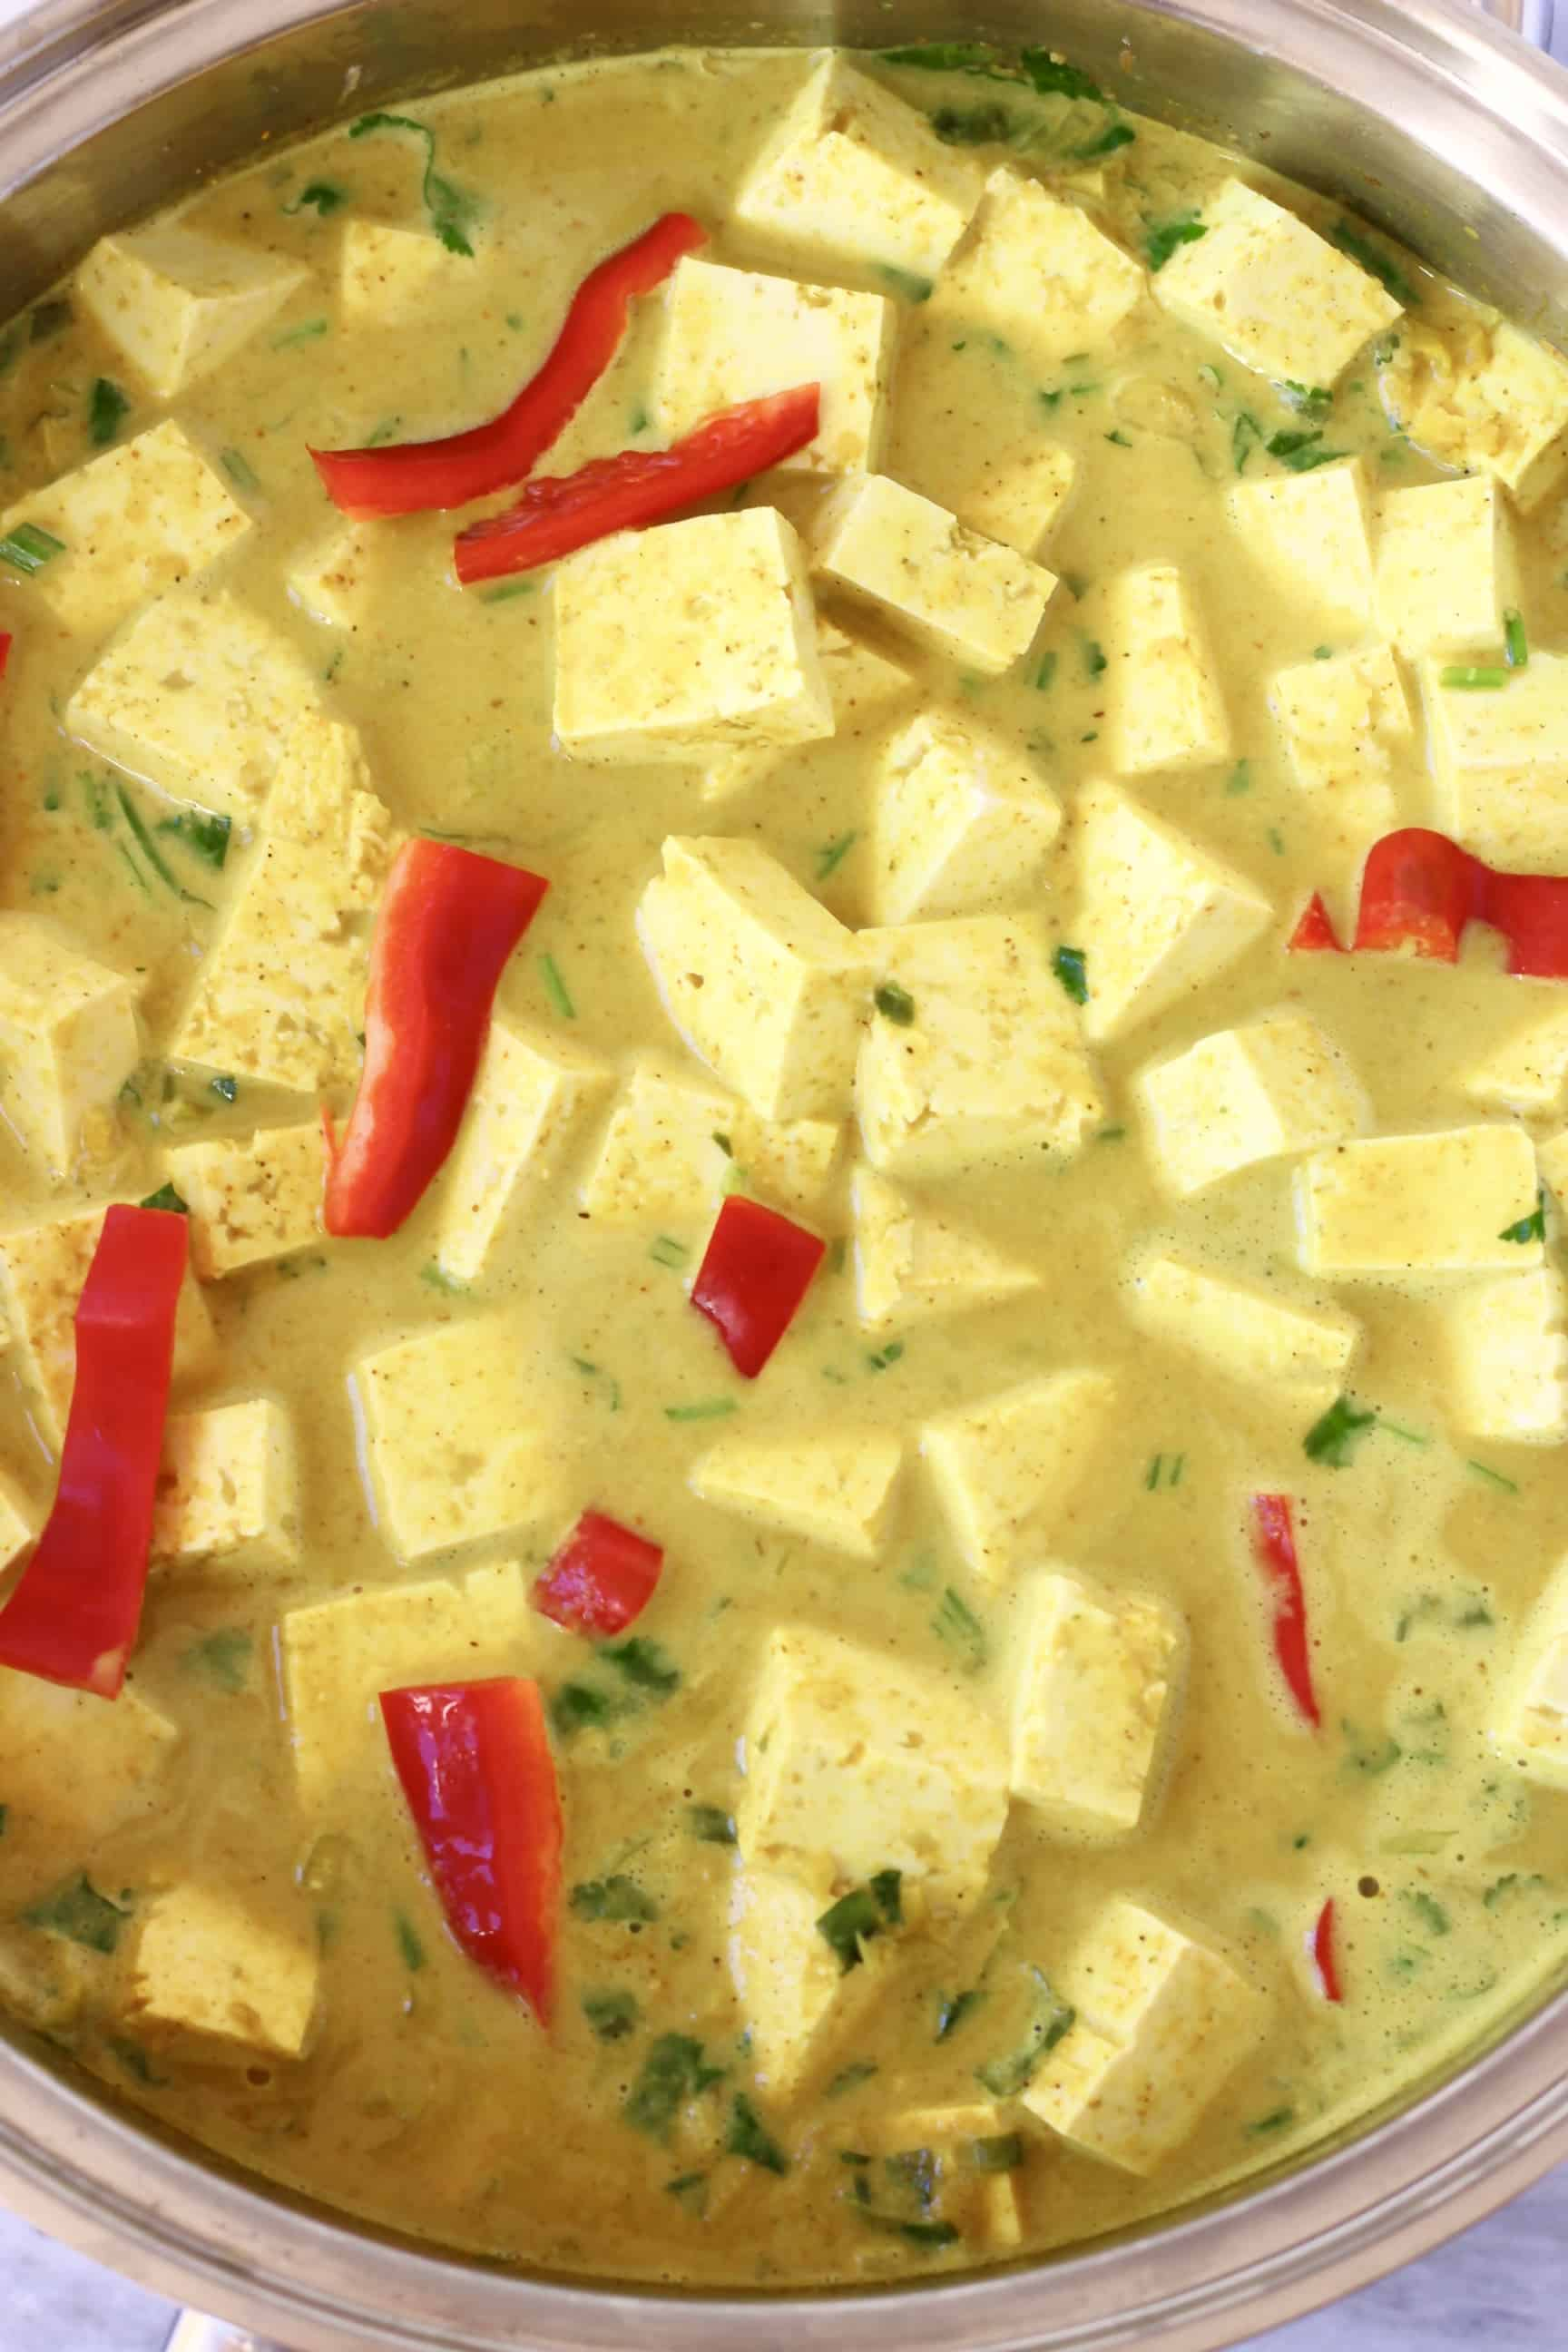 Cubes of tofu and strips of red pepper in a yellow curry sauce in a silver pan